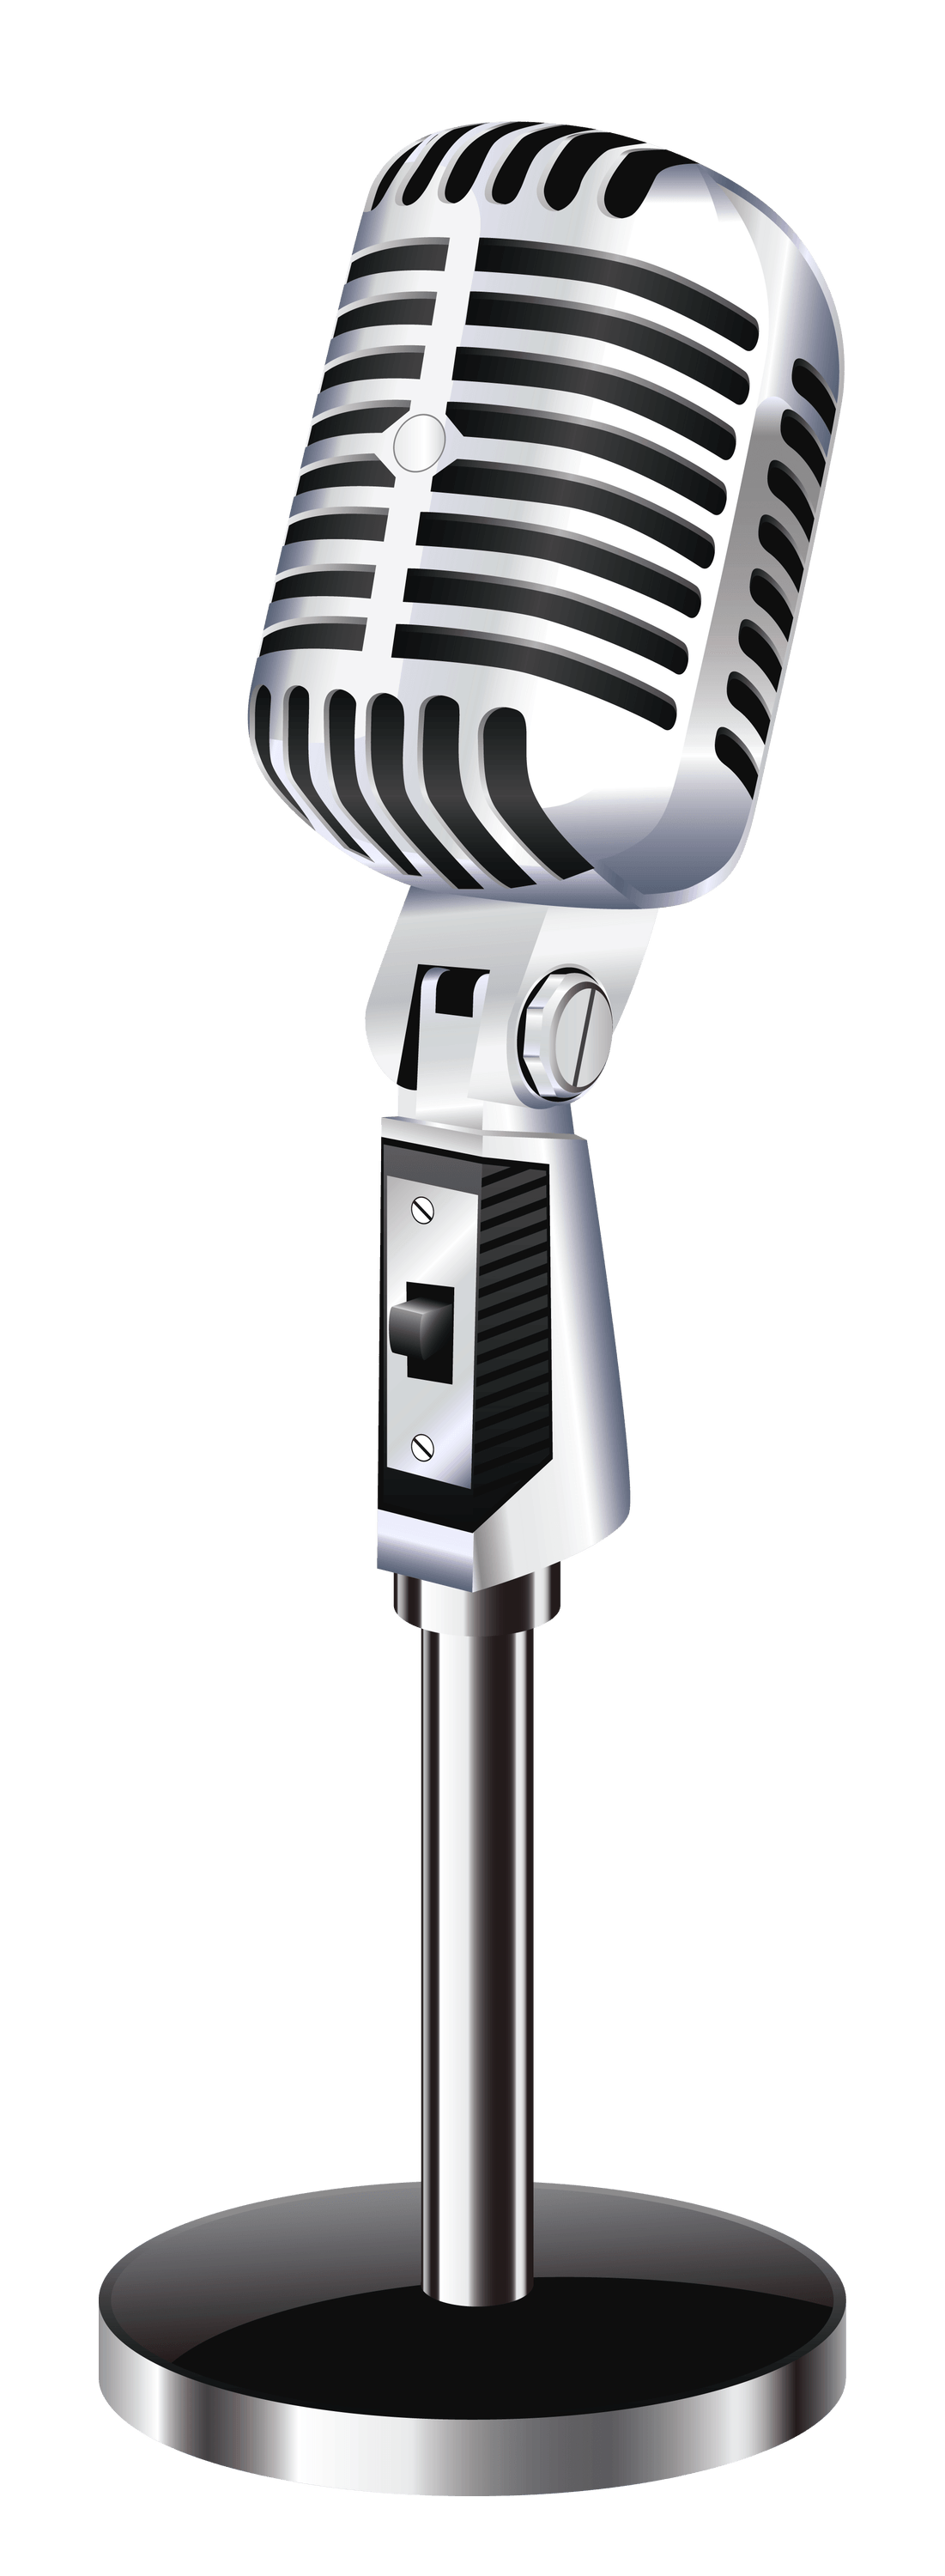 1101x3000 Microphone Clipart Vintage Microphone